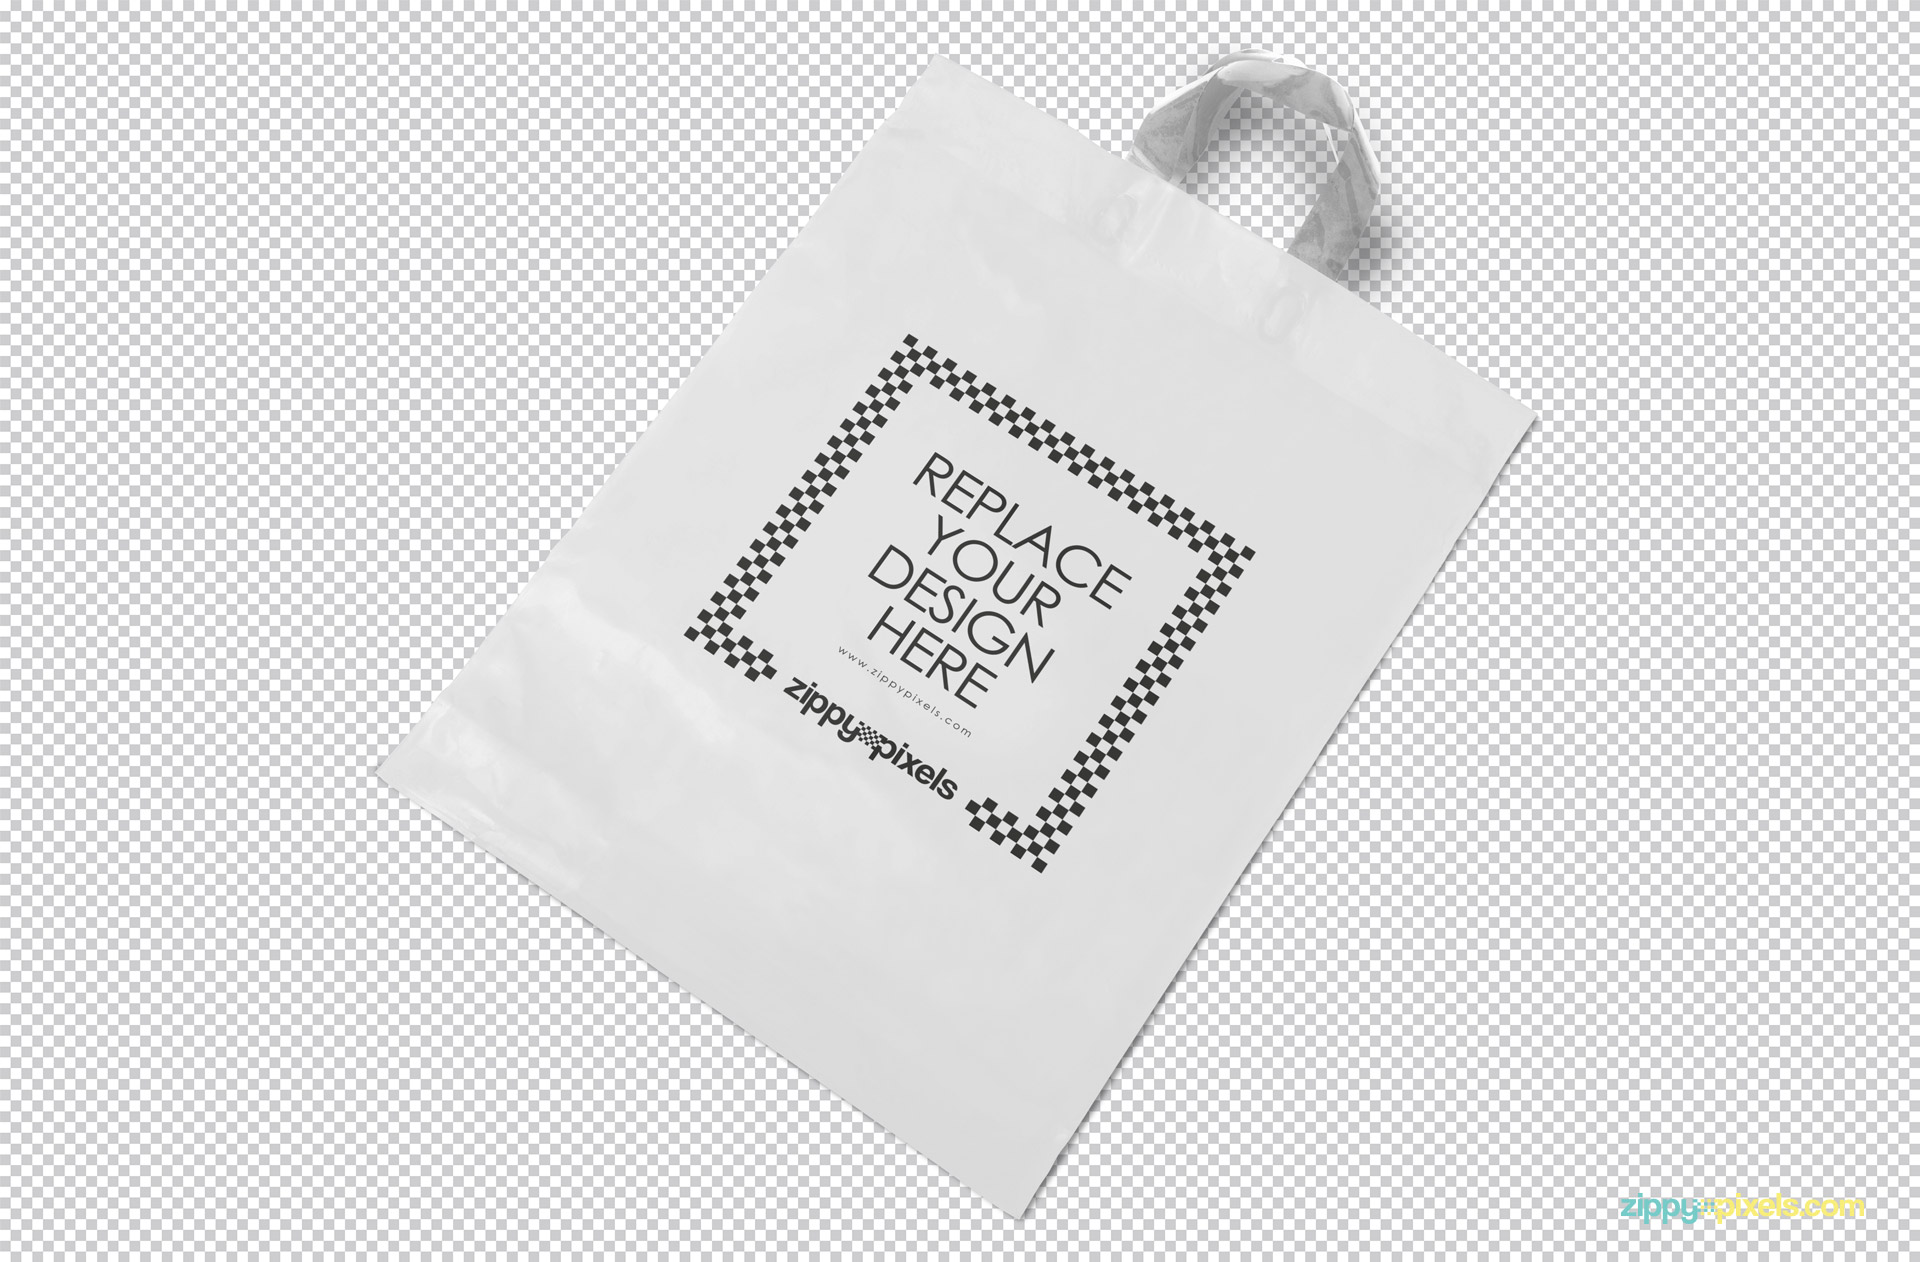 Download free graphic resources for ba…. Polythene Shopping Bag Mockup Free Psd Zippypixels